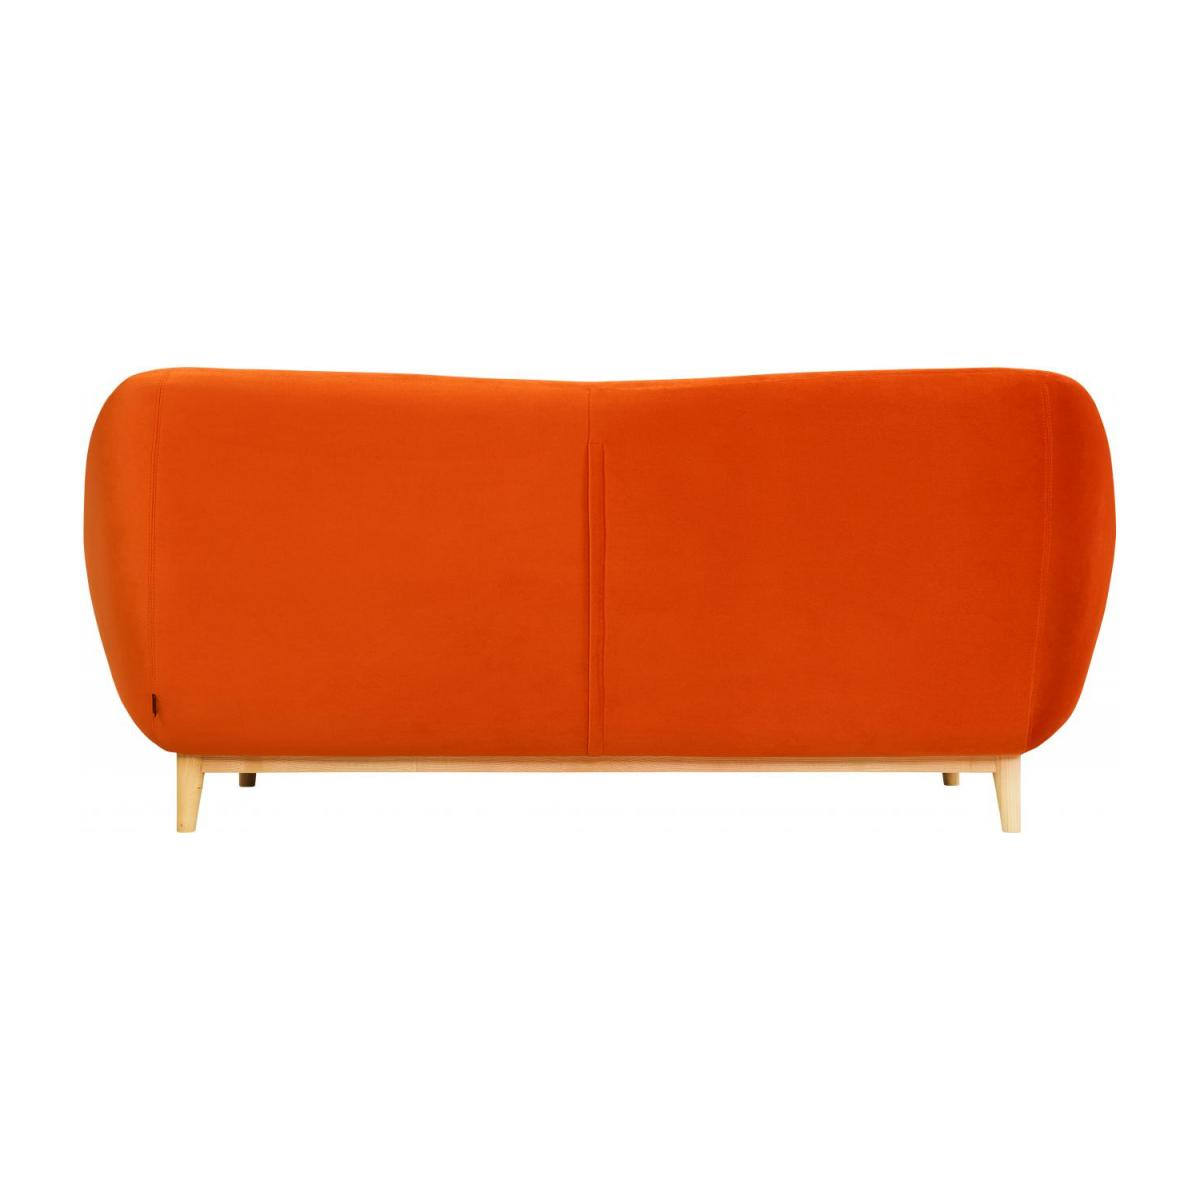 Canapé 3 places en velours - Orange - Design by Adrien Carvès n°4